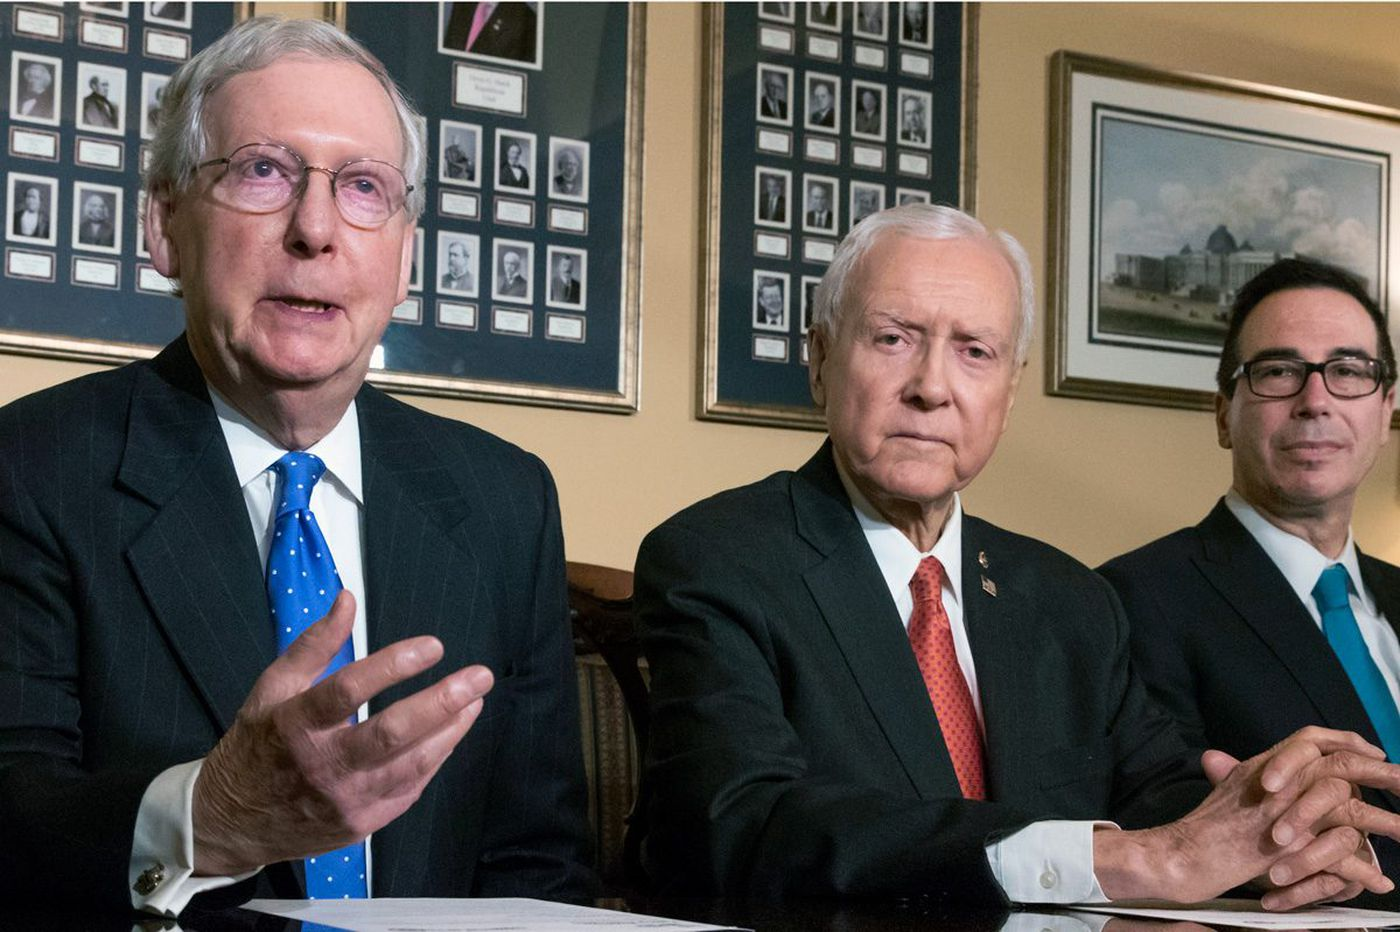 Analysis: Winners and losers in the Senate GOP tax plan